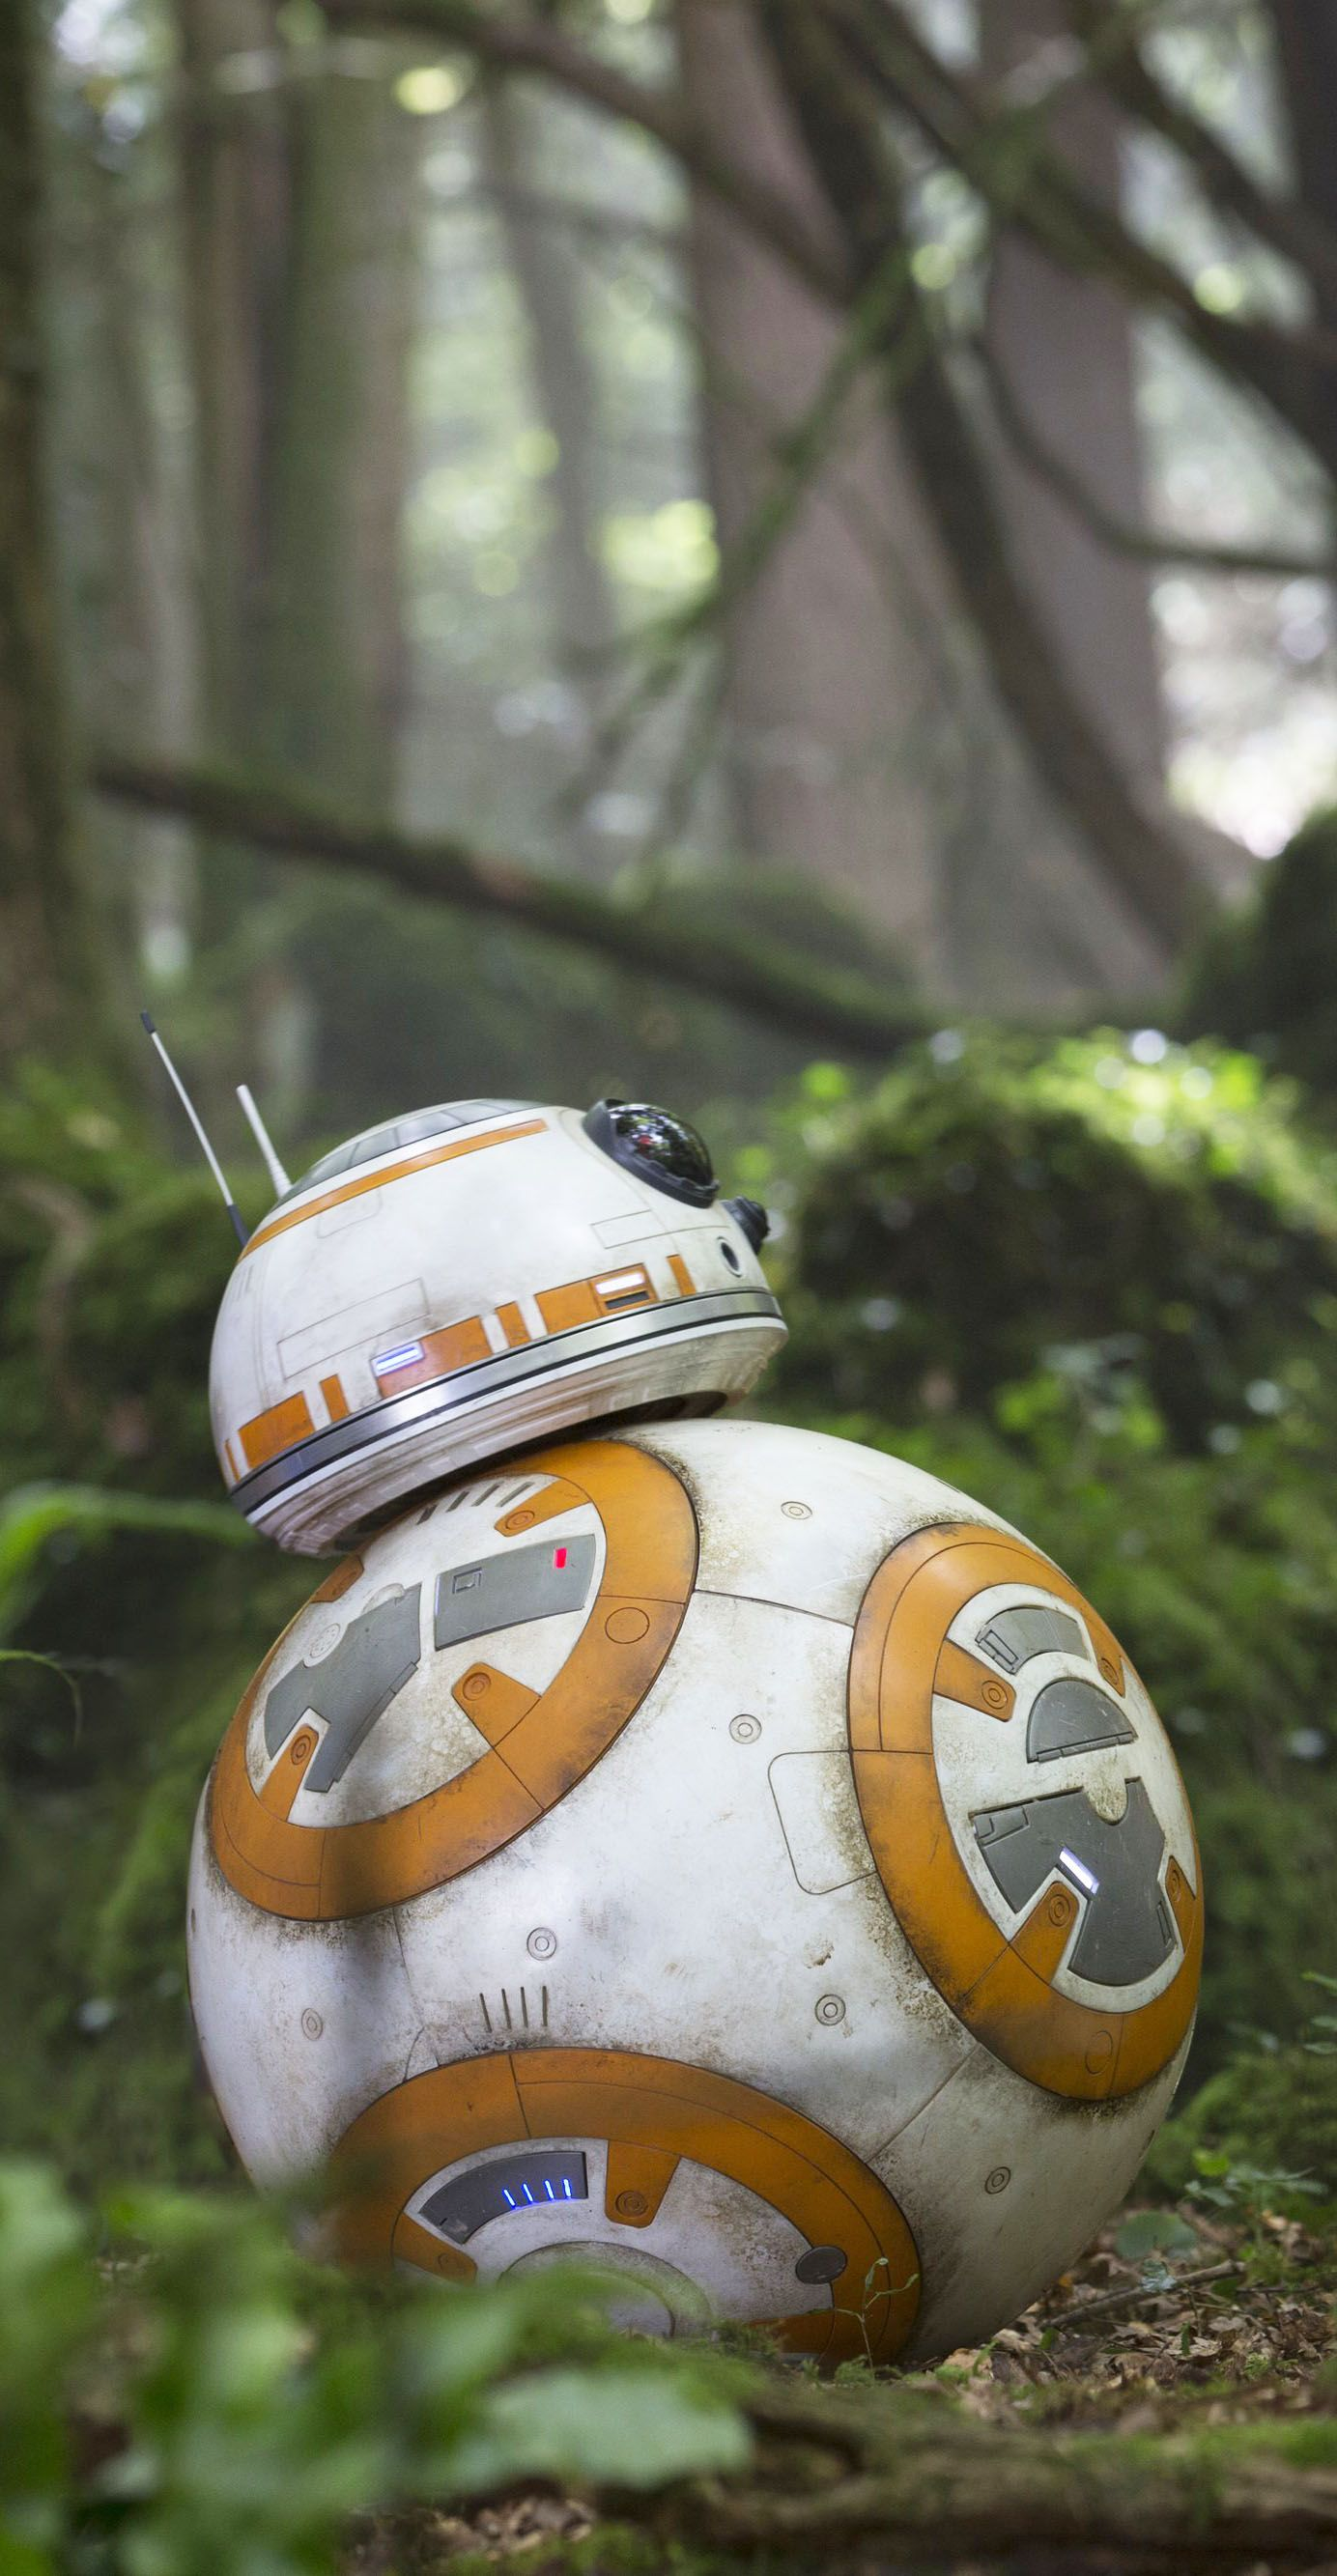 Star Wars Vii Bb 8 Hd Star Wars Wallpaper Iphone Star Wars Wallpaper Star Wars Droids